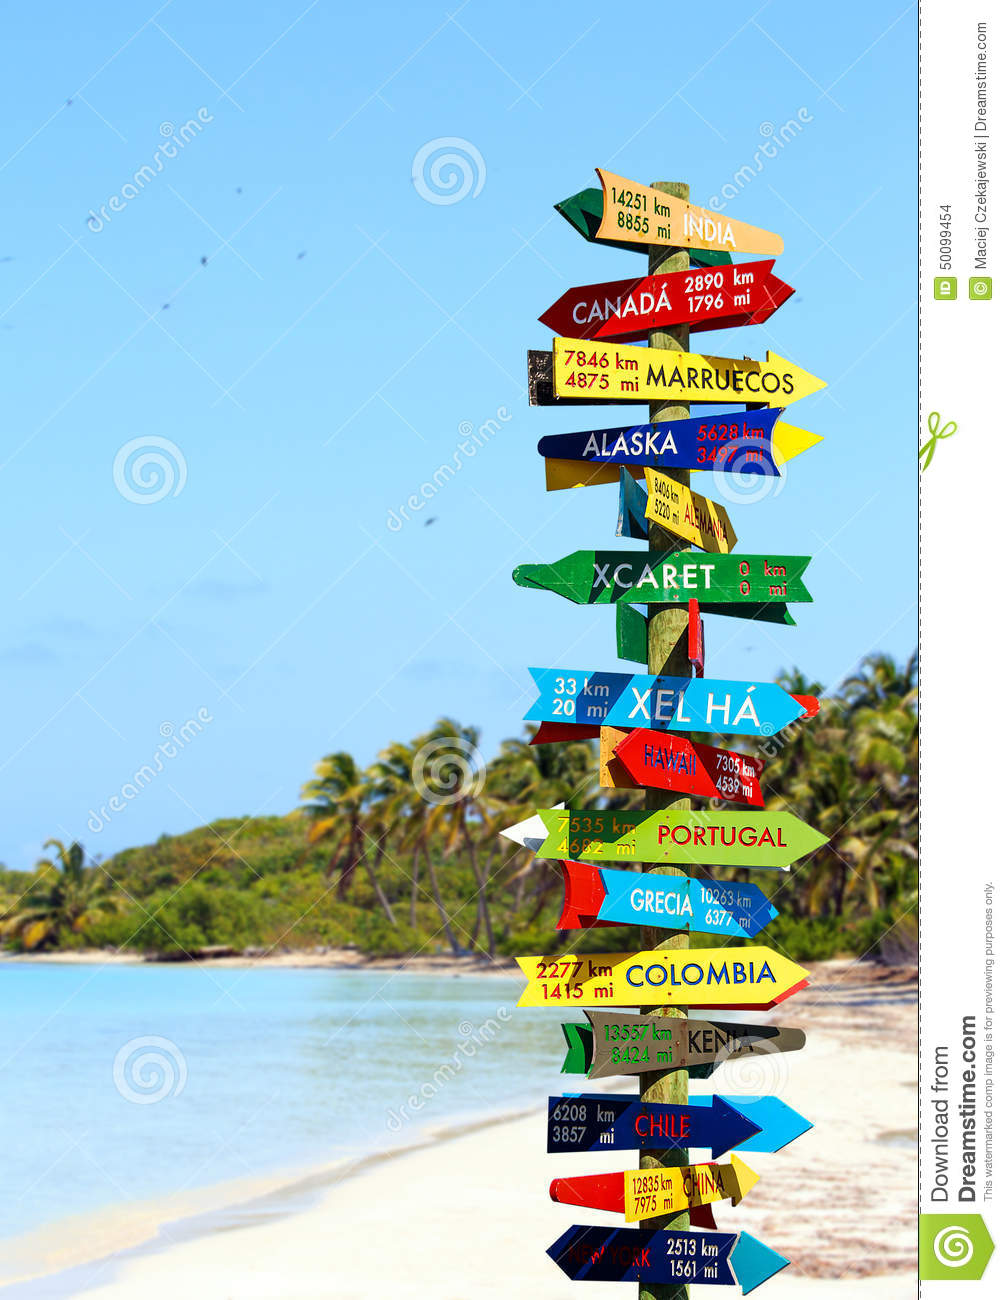 funny direction signpost stock photo image of directional 50099454